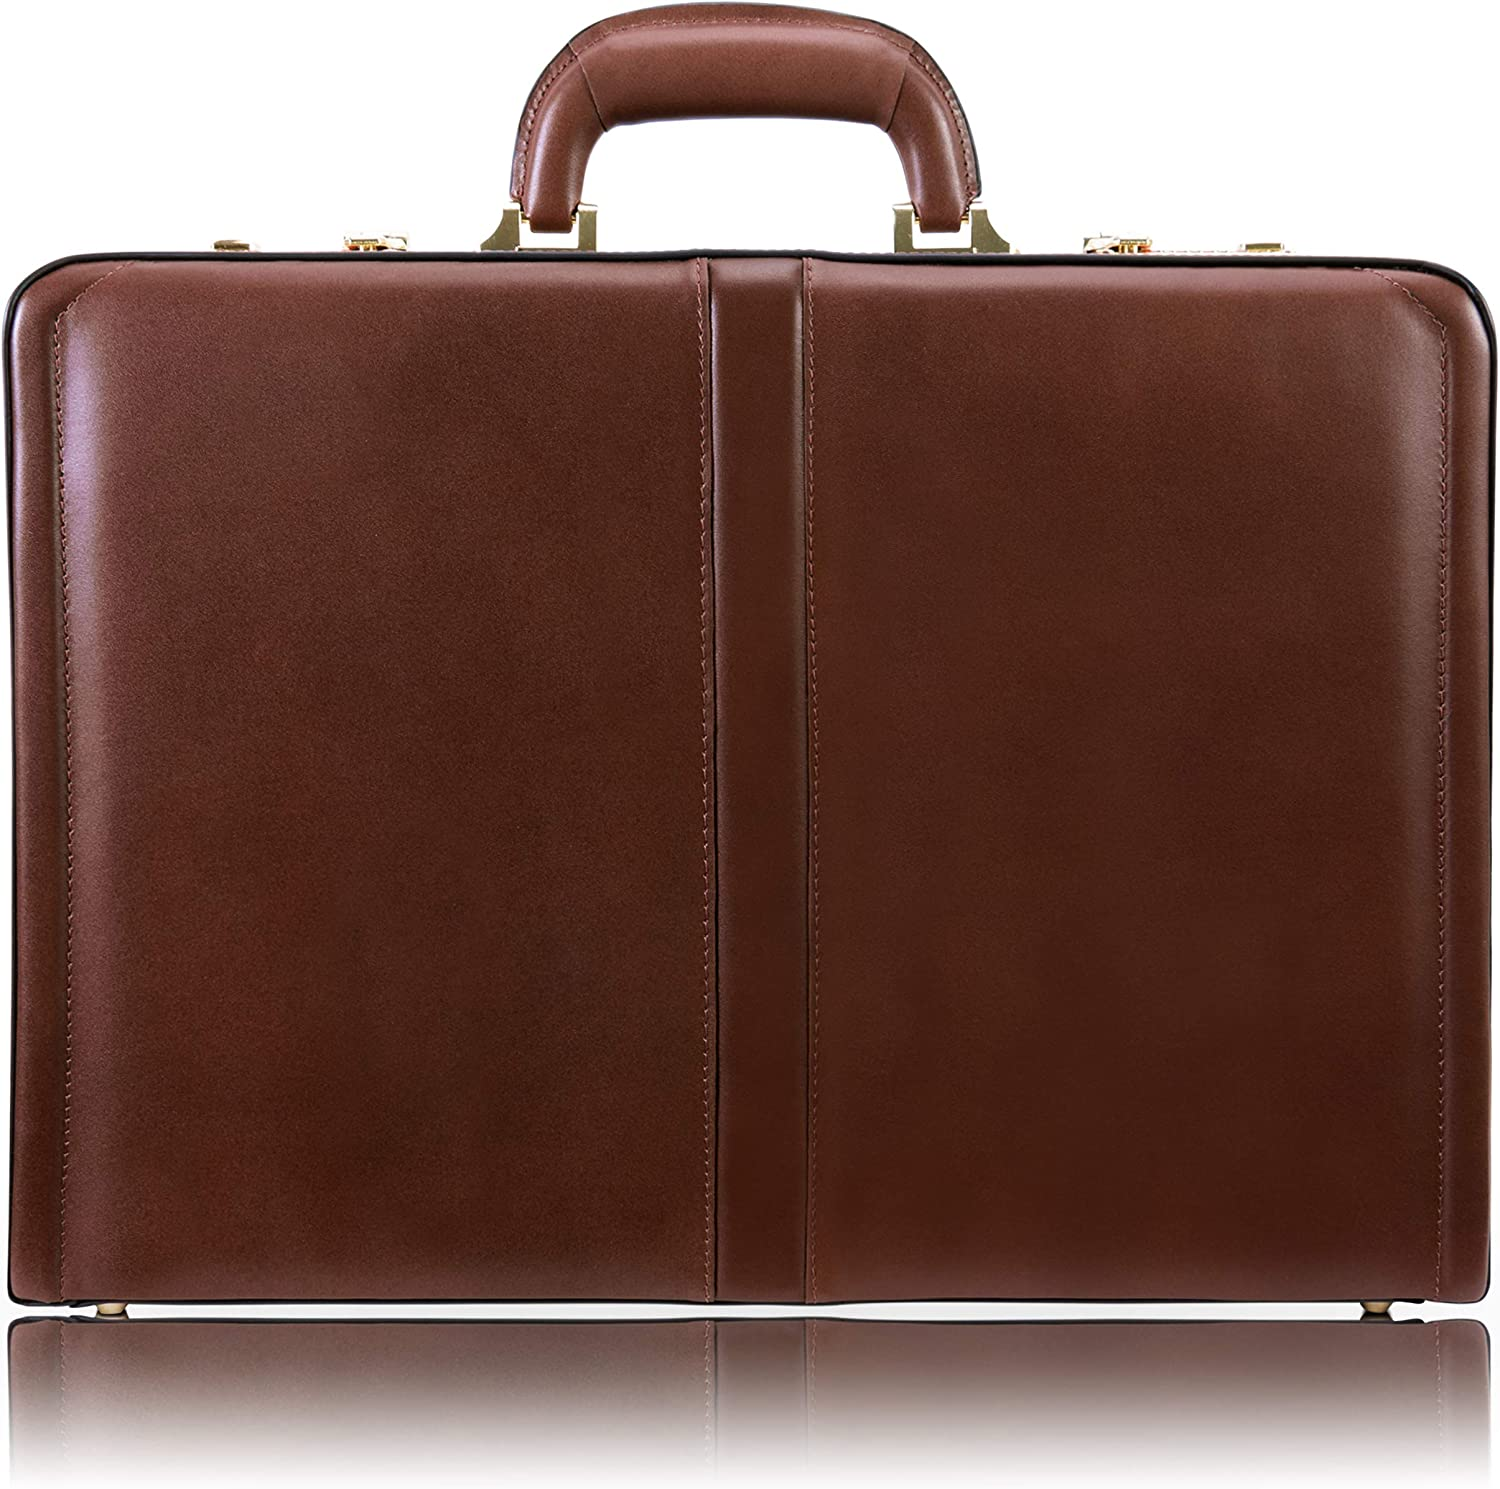 "McKlein, V Series, Reagan, Top Grain Cowhide Leather, Leather 3.5"" Attaché Briefcase, Brown (80444)"